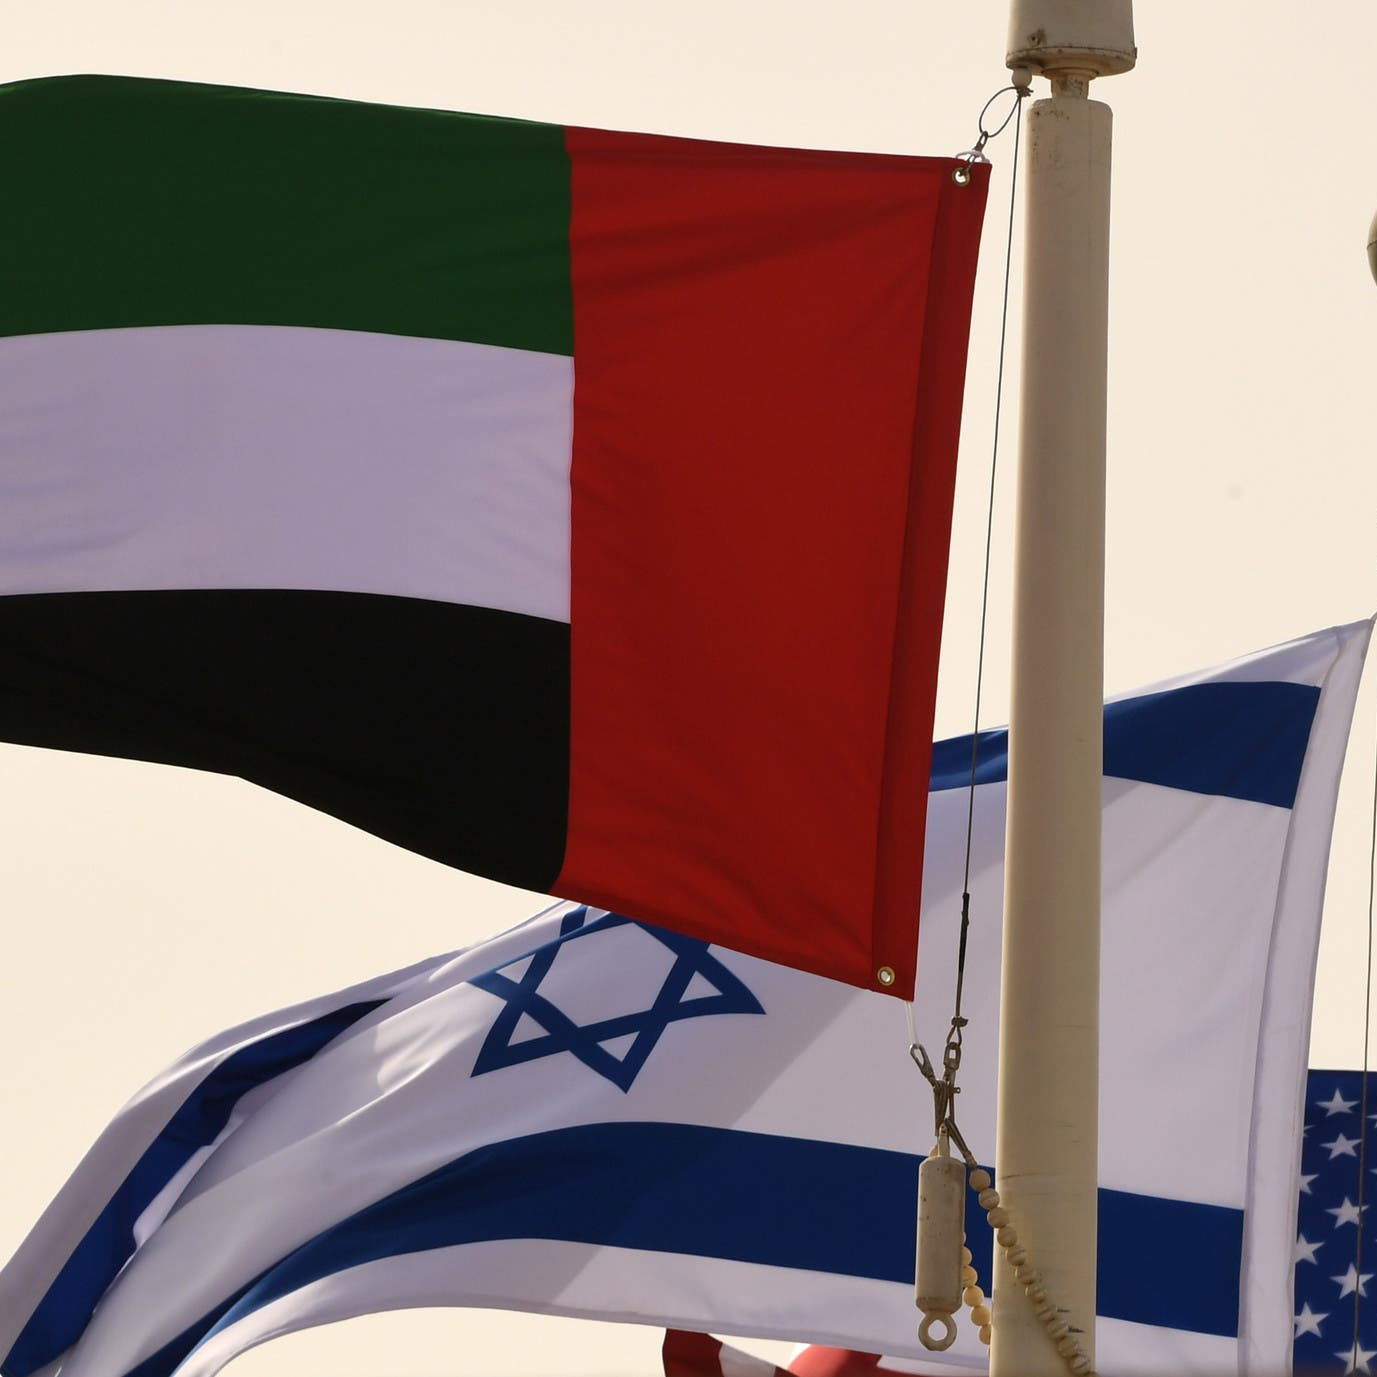 Abraham Accords: A year of business ties between UAE, Israel, Bahrain, experts